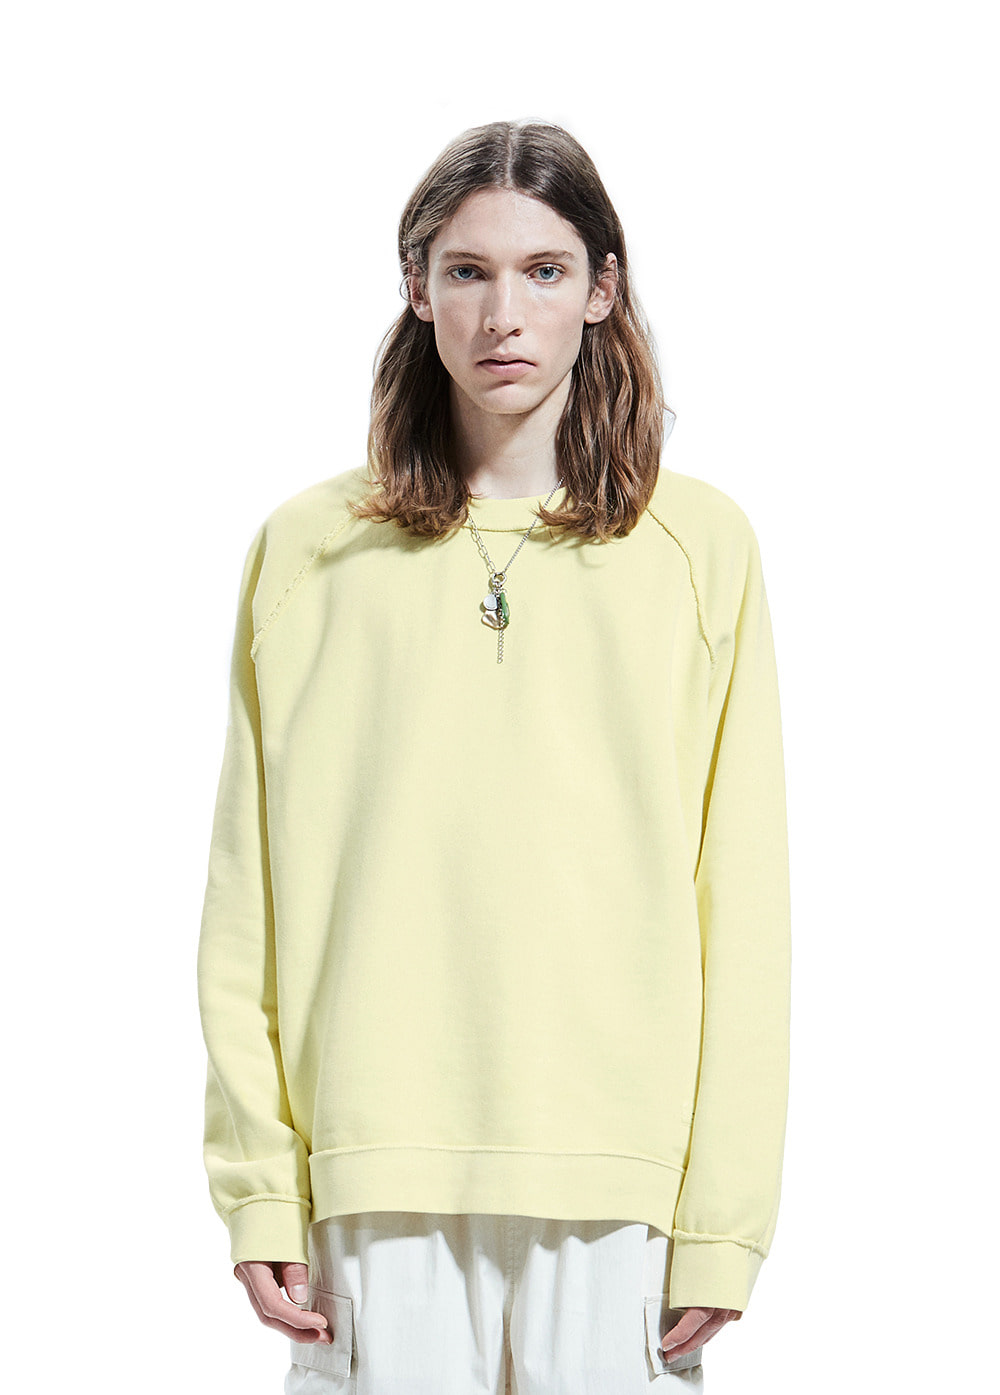 P-DYED RAGLAN SWEATSHIRT yellow